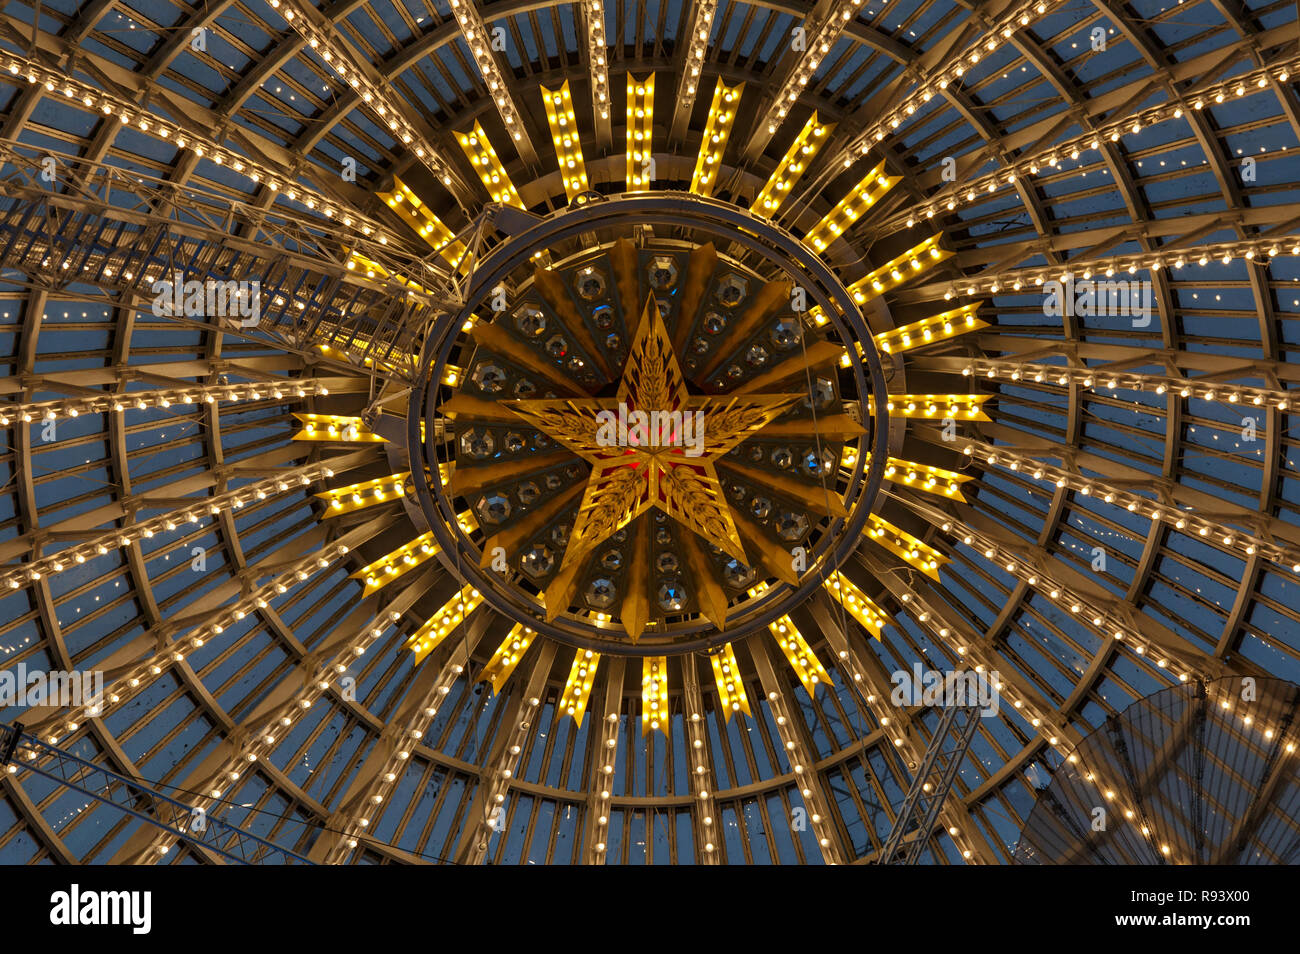 Moscow, Russia - November 28, 2018: Glass dome of the Space Cosmos pavilion at VDNH - Exhibition of Achievements of National Economy. - Stock Image